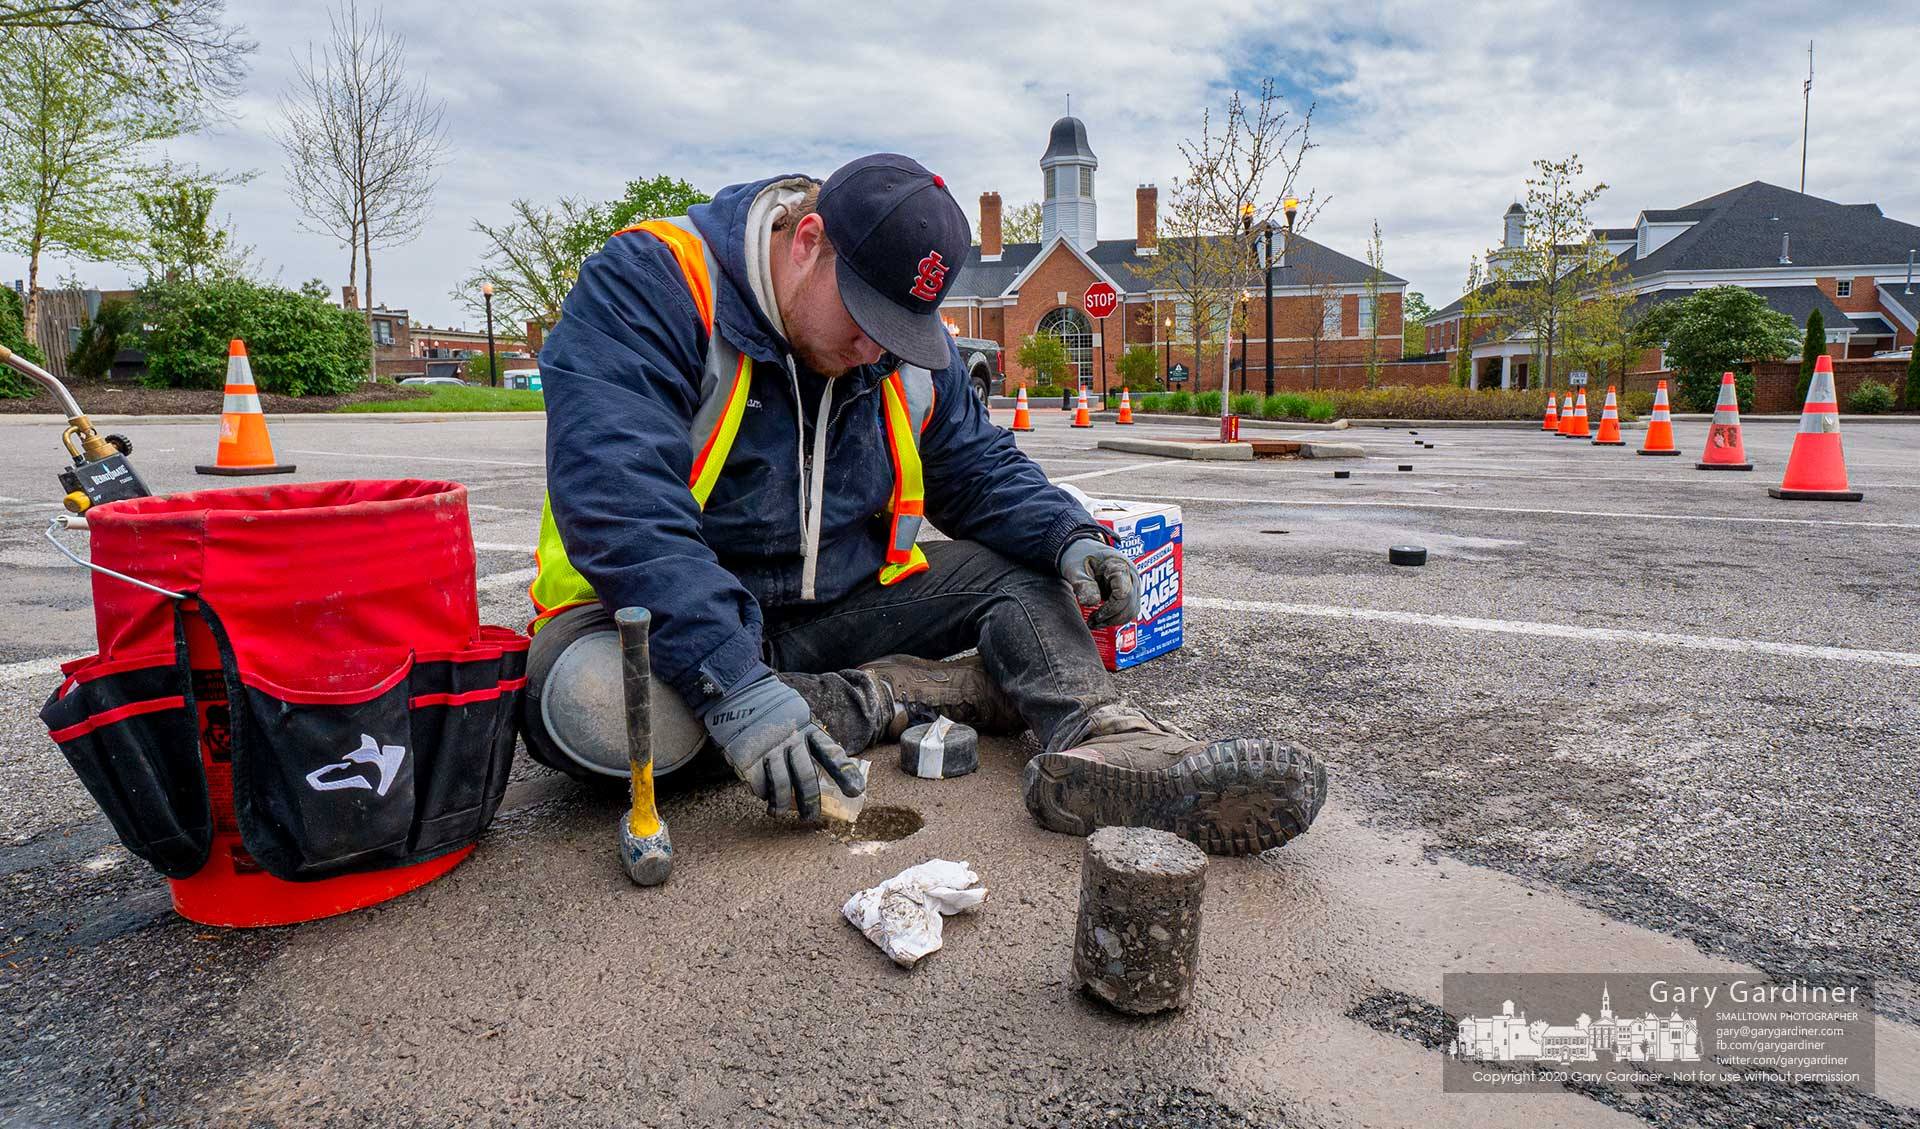 A work crew installs sensors in the parking lot behind city hall as part of the program to monitor and collect data on city-owned parking lots and includes the use of a mobile app for shoppers. My Final Photo for May 6, 2020.